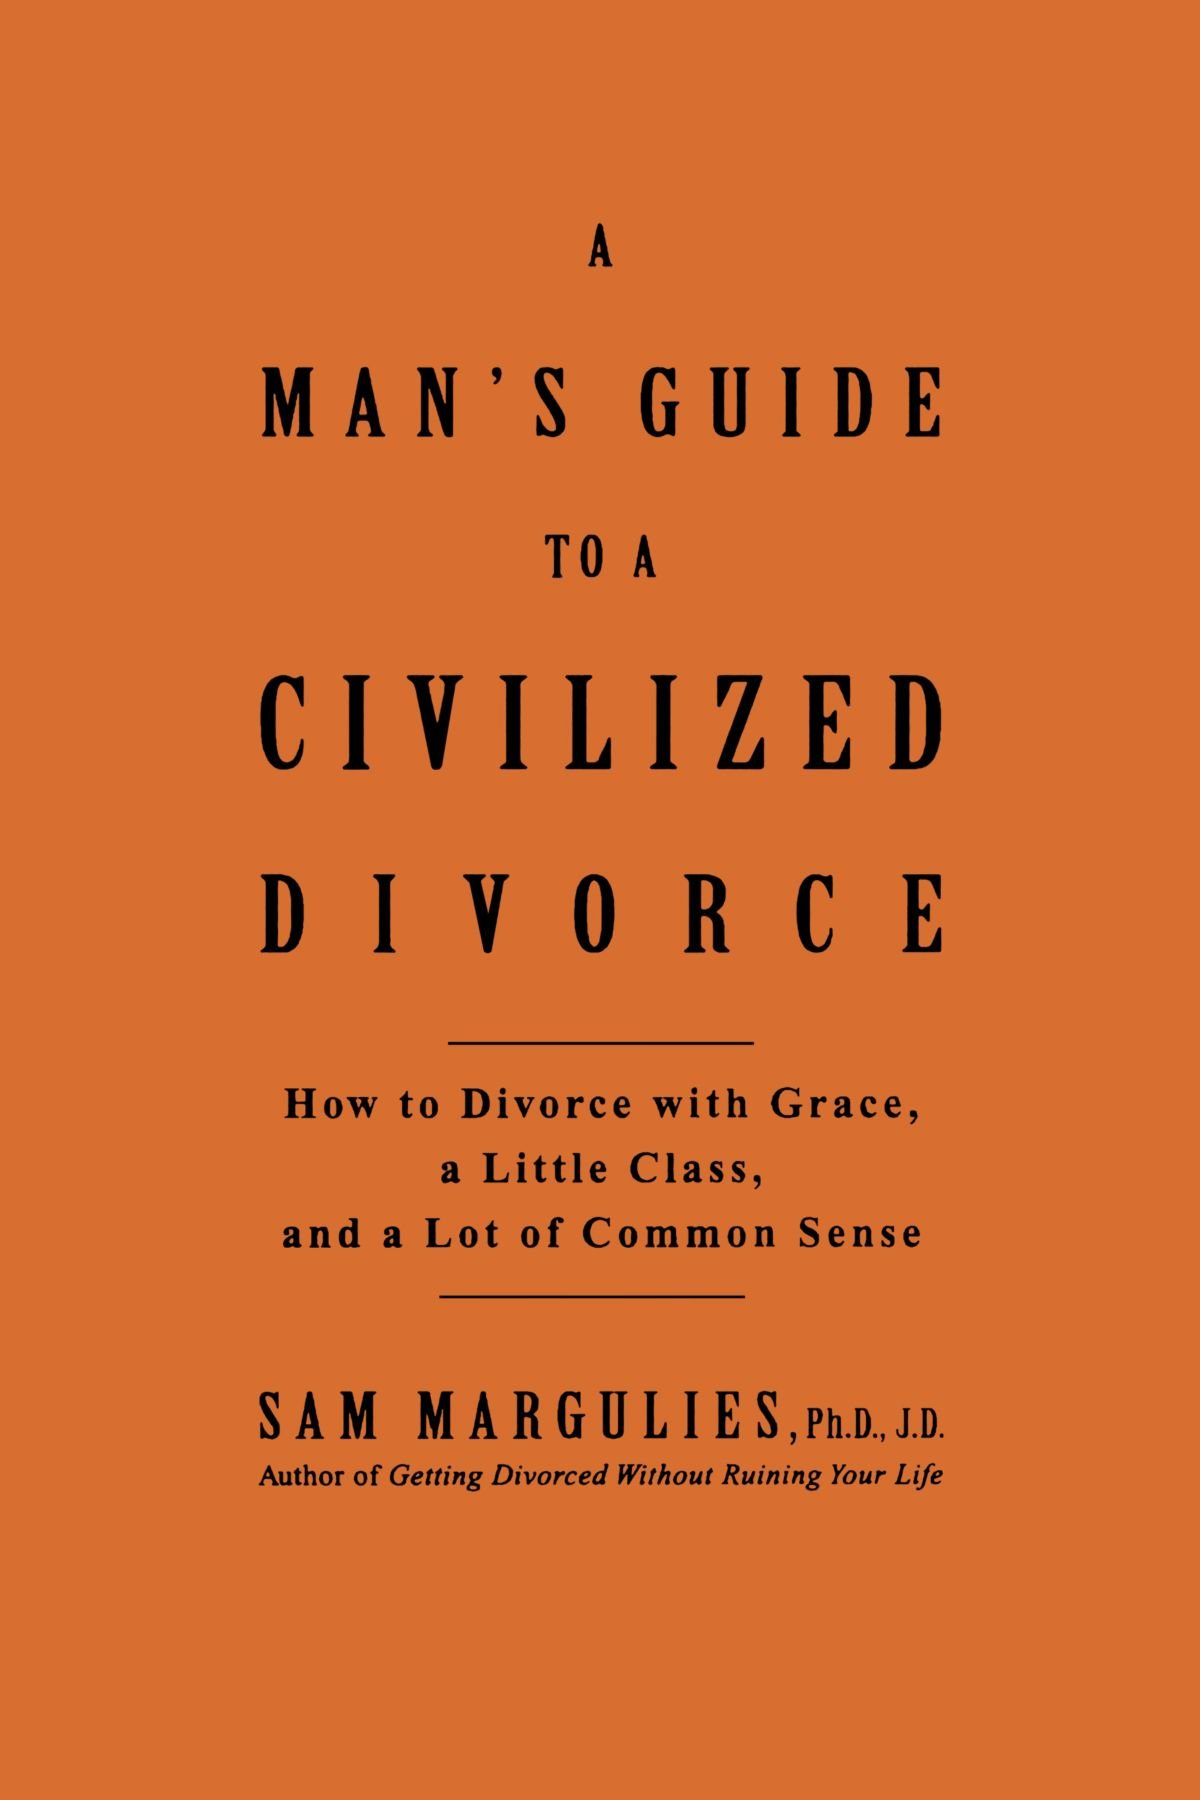 Read Online Man's Guide to a Civilized Divorce: How to Divorce with Grace, a Little Class, and a Lot of Common Sense PDF